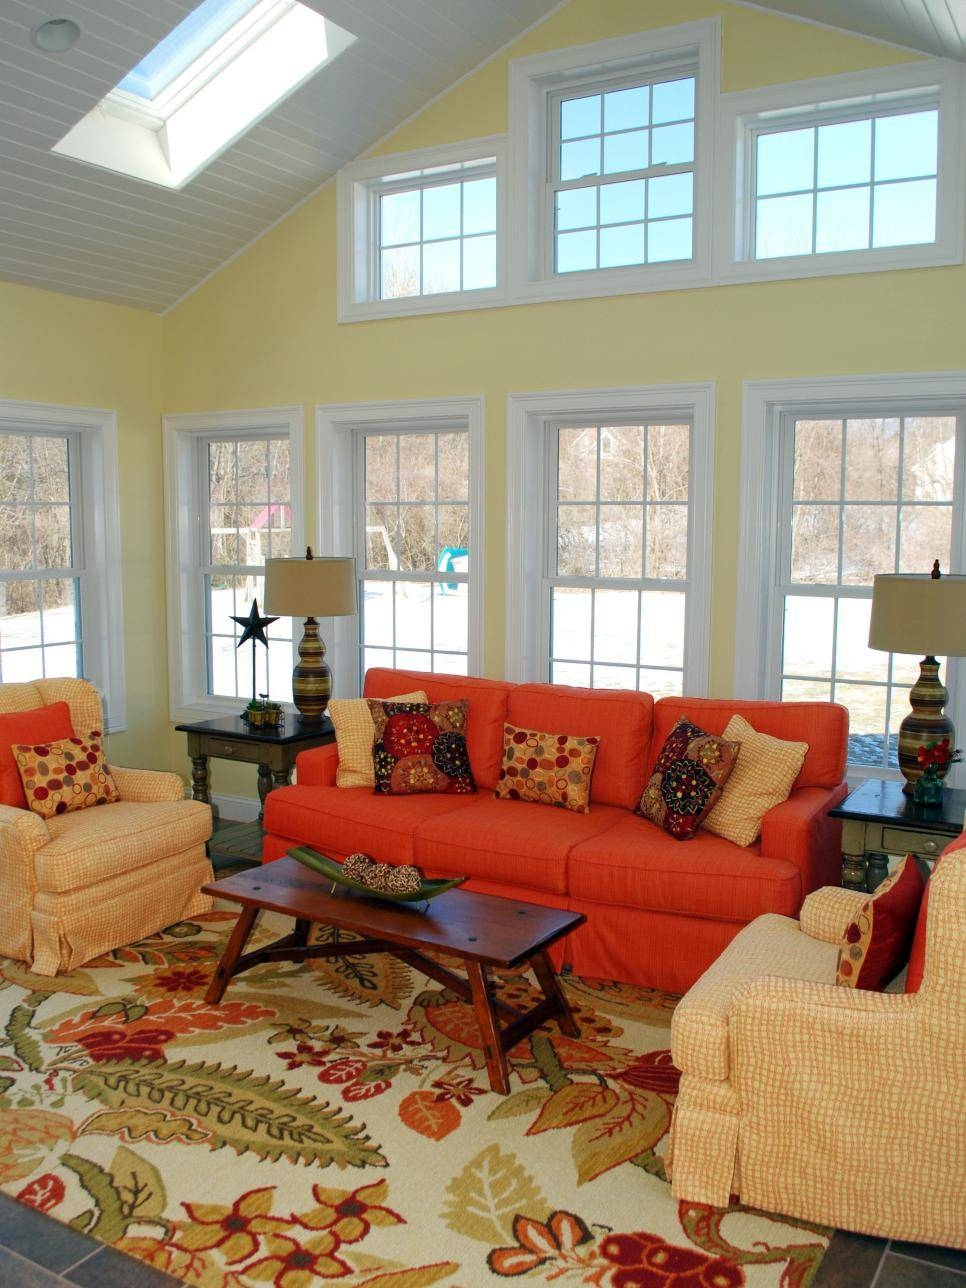 Slipcovers For Sofas, Chairs & Ottomans | Hgtv regarding Colorful Sofas and Chairs (Image 14 of 15)